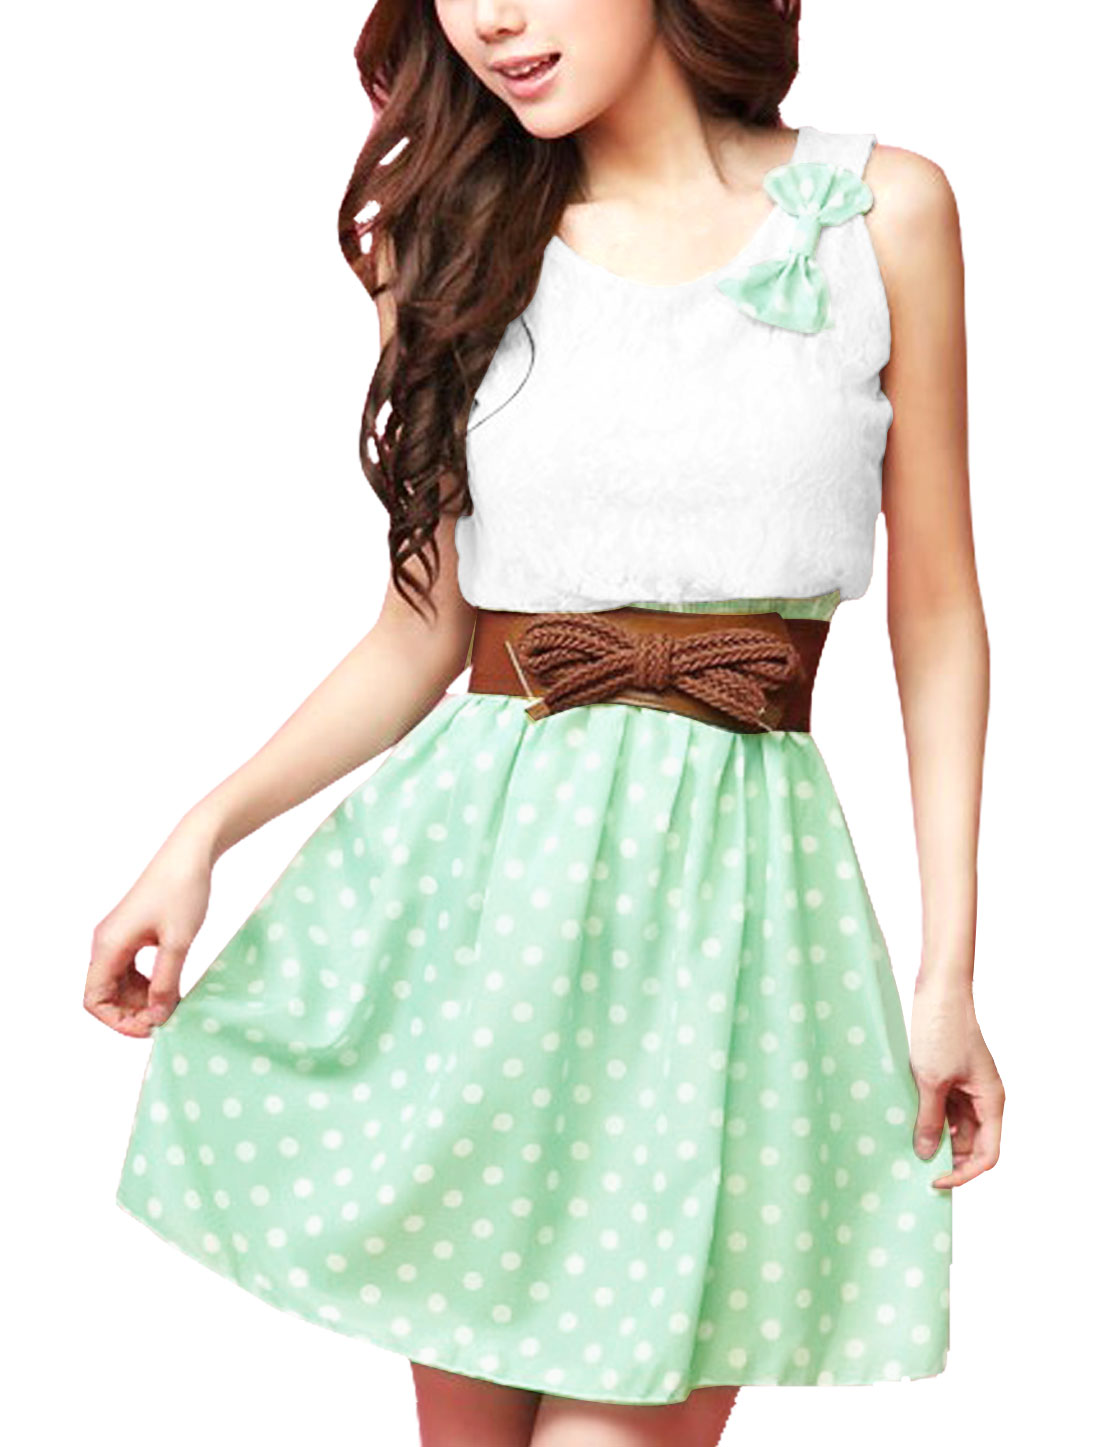 Lady Green Scoop Neck Sleeveless Lace Upper Elastic Waist Dots Dress XS